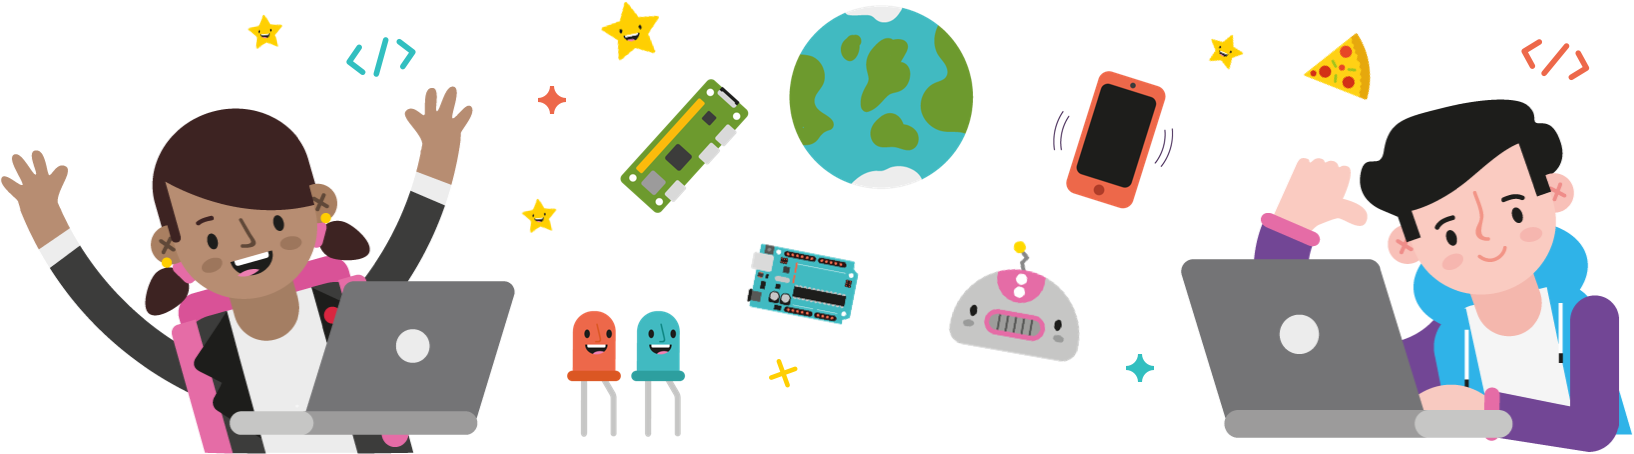 CoderDojo – Enabling young people worldwide to create and